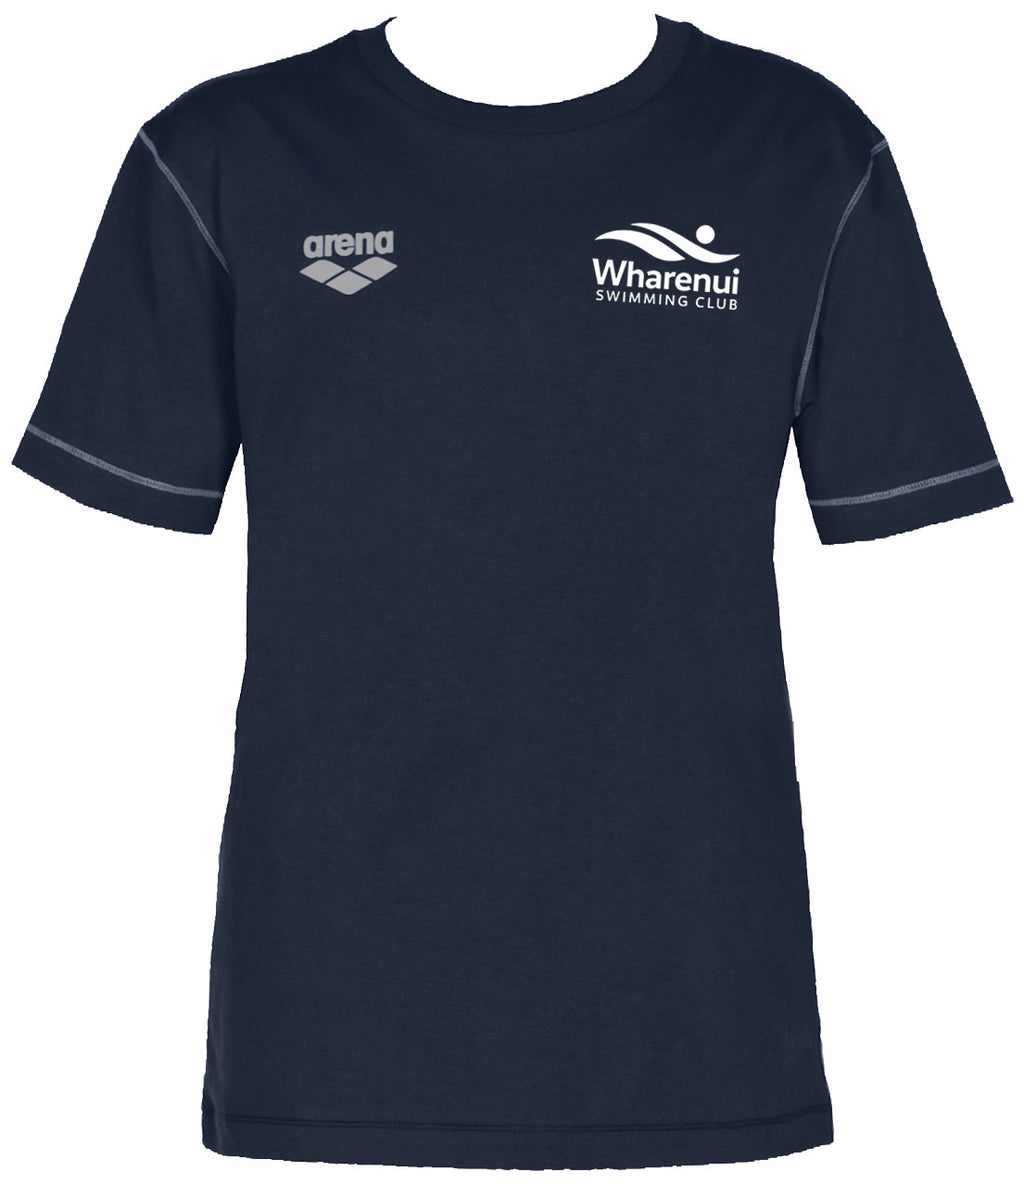 Wharenui Junior's TL Short Sleeve Tee